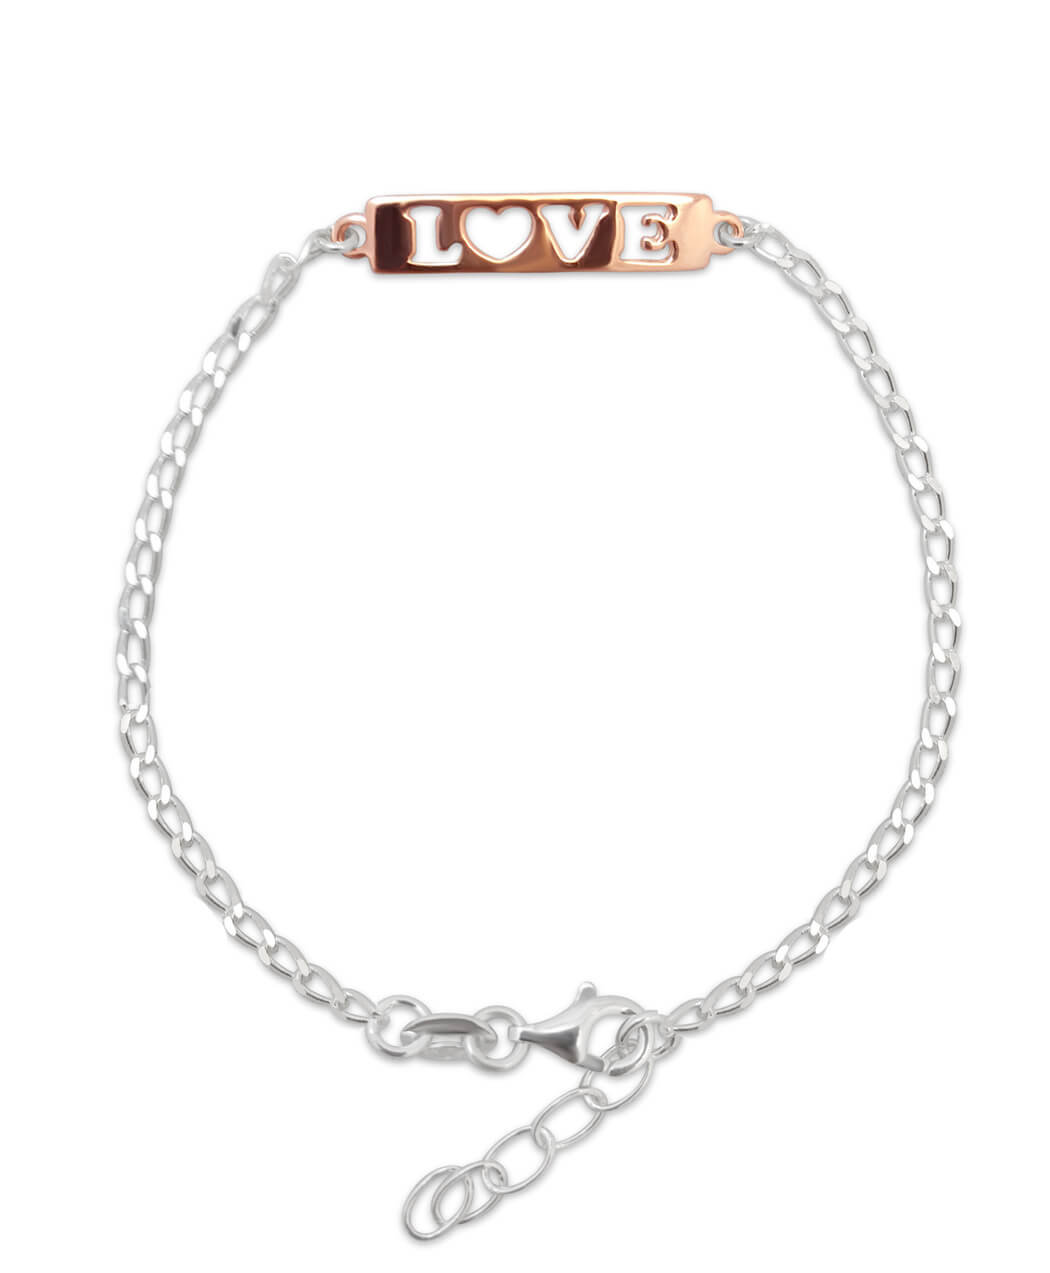 Rose gold valentines day bracelet